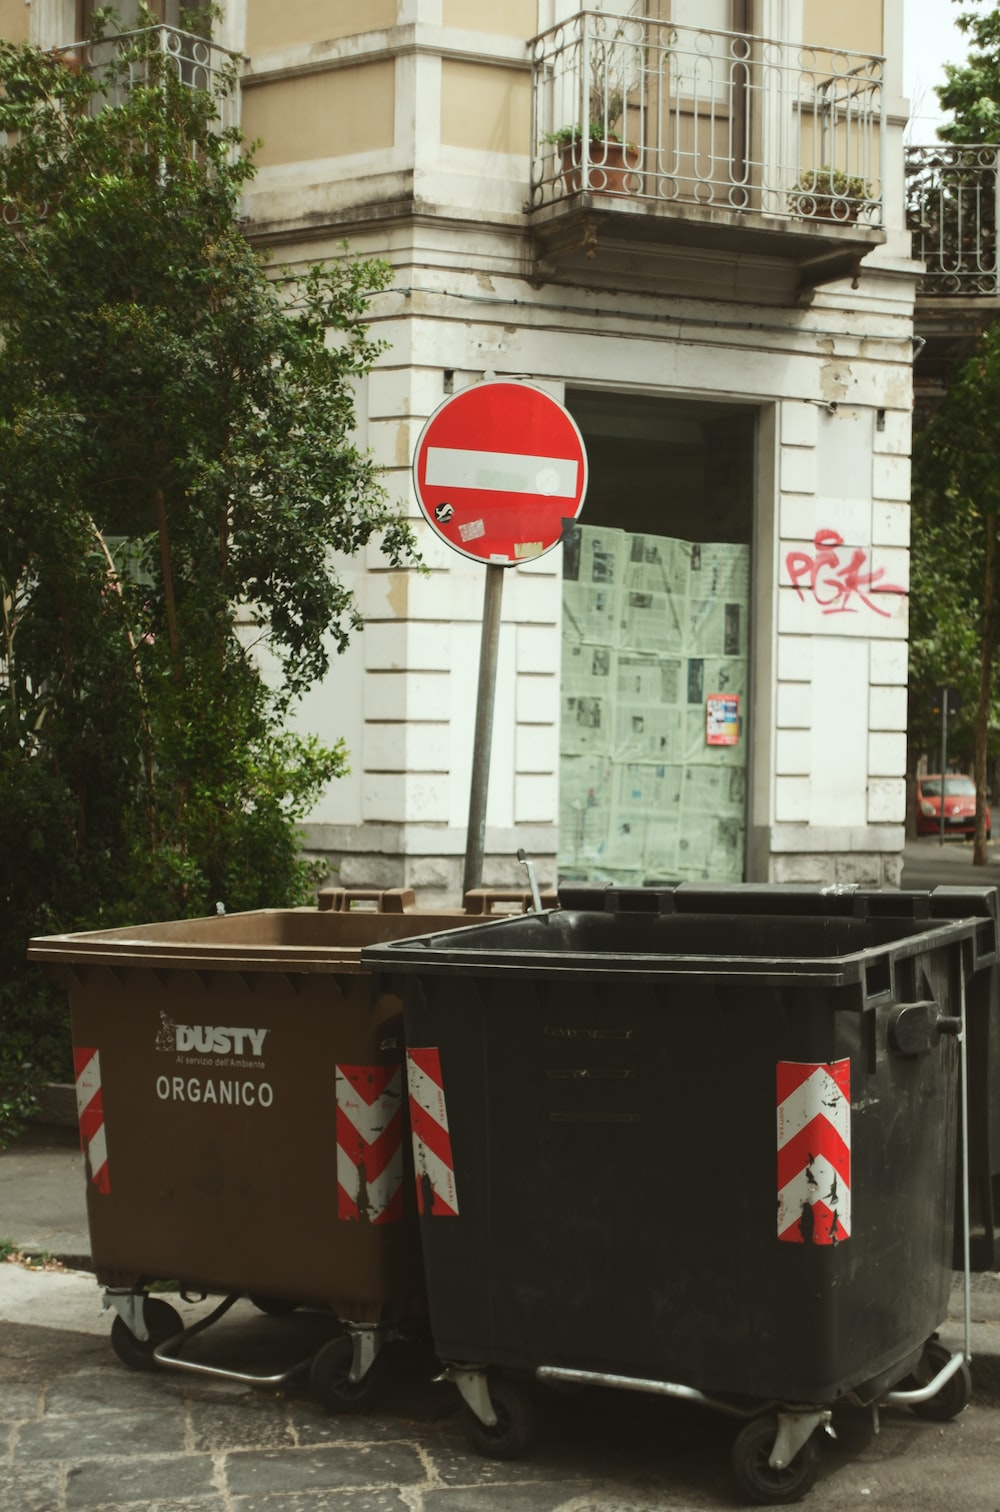 two opened dumpsters beside stop sign